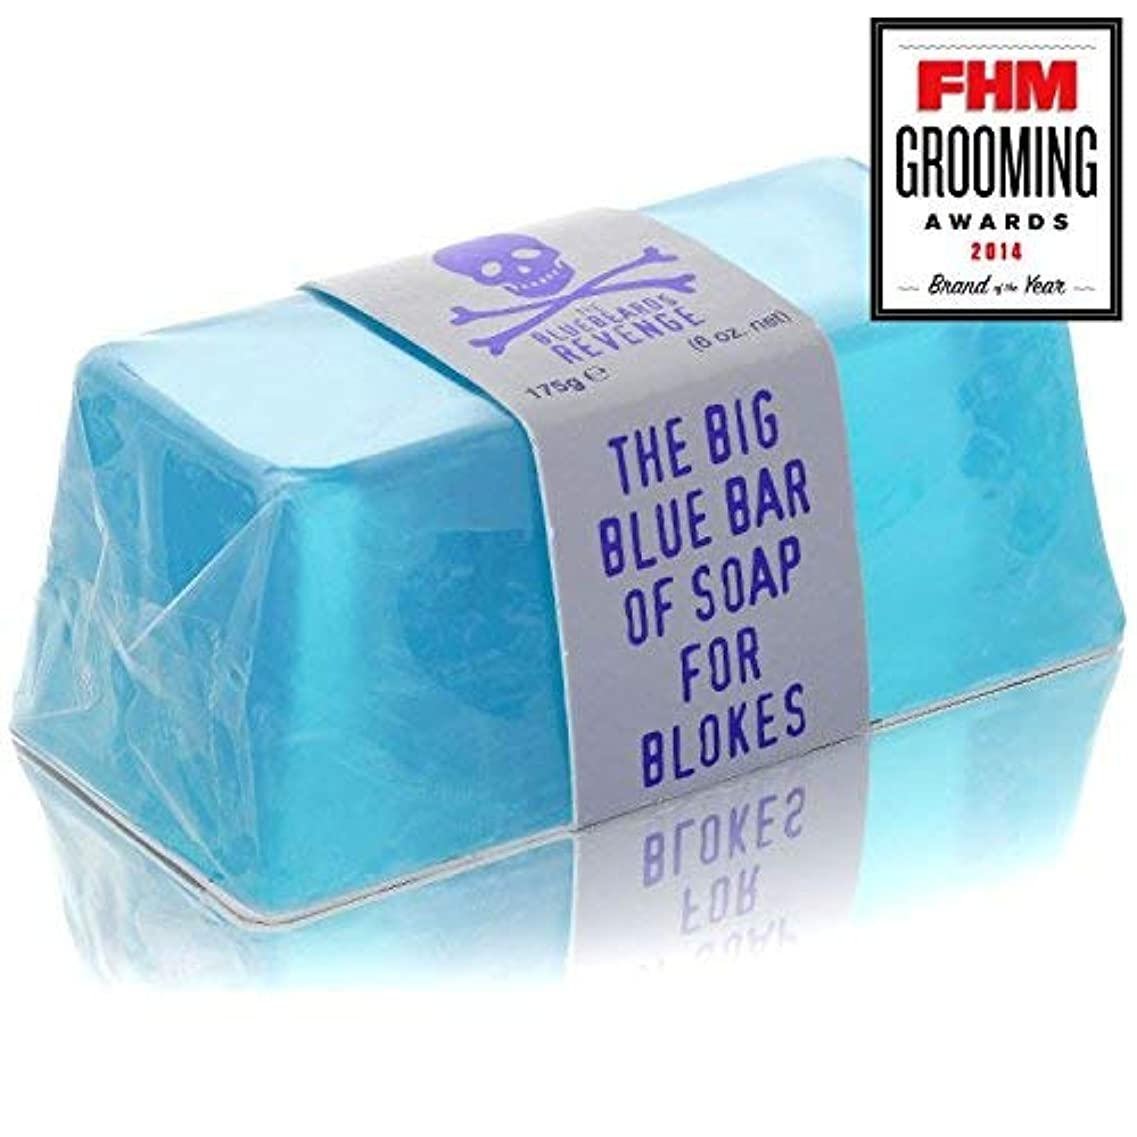 酸度ヘリコプター熱狂的なThe Bluebeards Revenge Big Blue Bar of Soap for Blokes Glycerin Soap by The Bluebeards Revenge [並行輸入品]